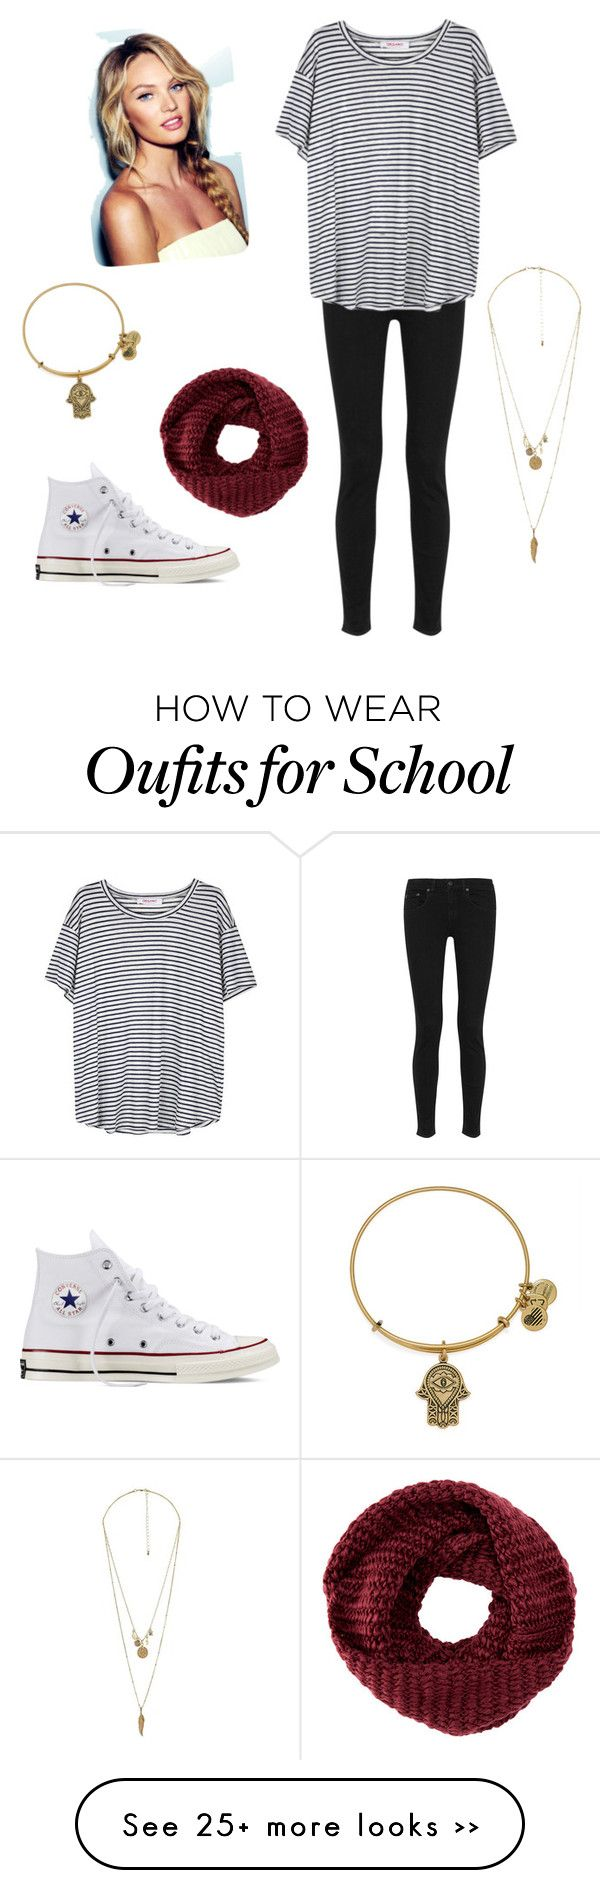 """""""easy fall school outfit"""" by boyettesk on Polyvore featuring rag & bone, Organic by John Patrick, Converse, TOMS, Alex and Ani and Charlotte Russe"""